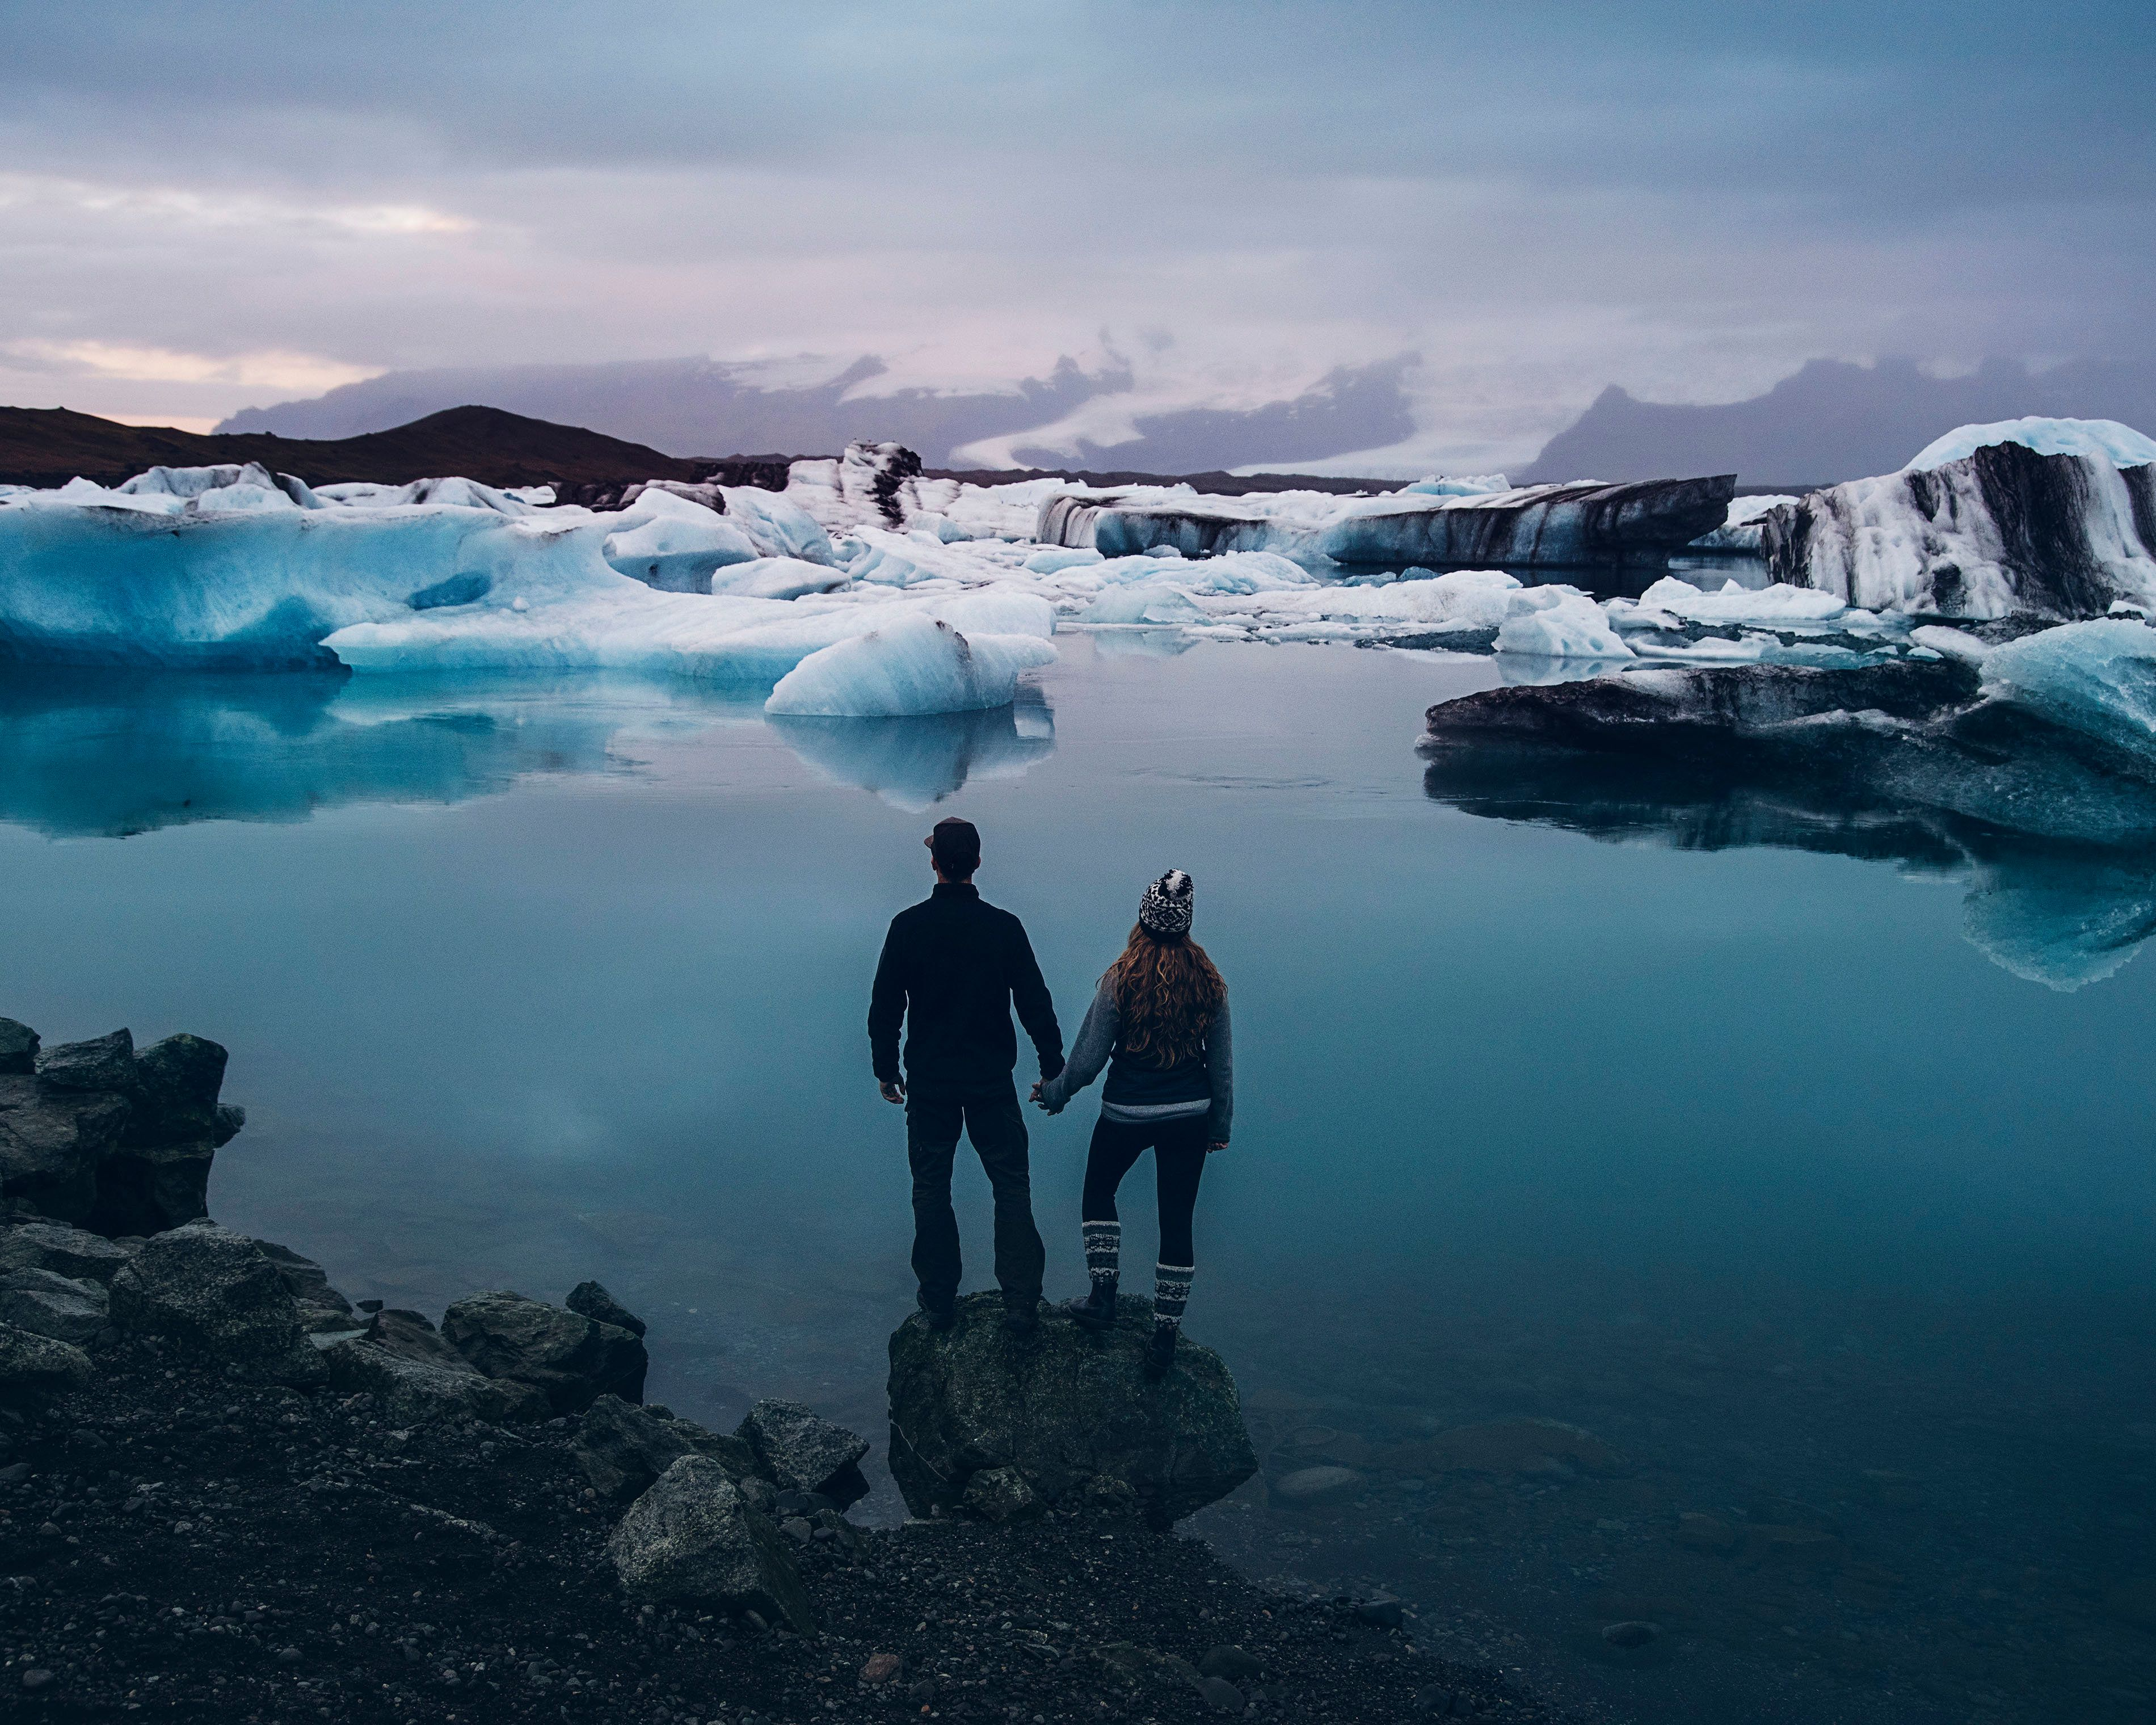 PIC BY TORY MOTH/CATERS NEWS - (PICTURED: Jeremy and Rachelle Garrett at A foggy morning at Jokulsarlon glacial lagoon) -  Th